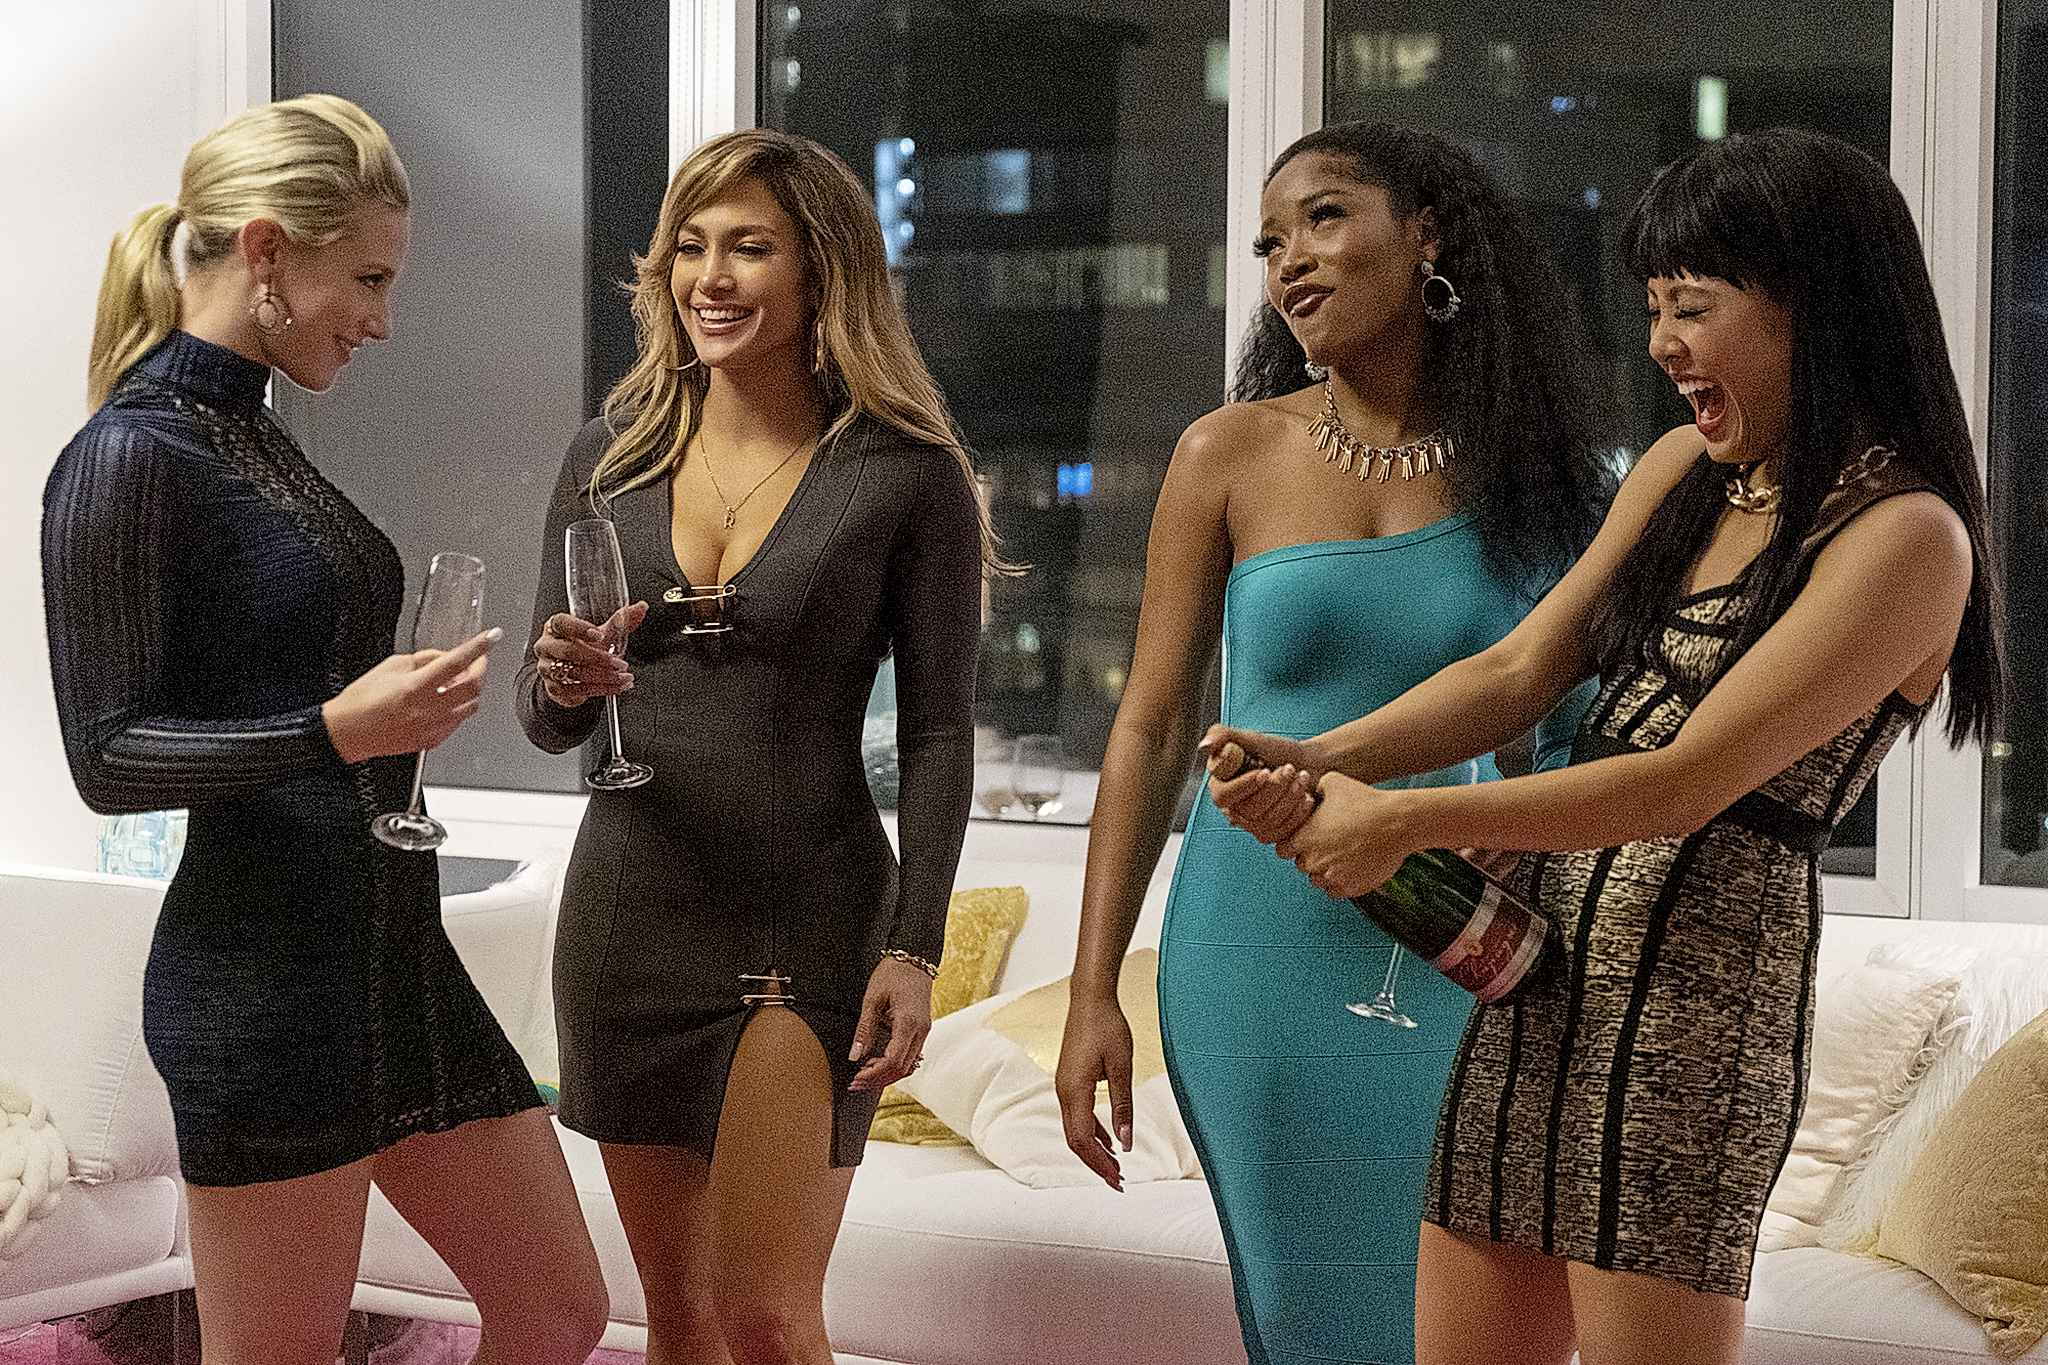 Barbara Nitke / STX Films</p><p>Lili Reinhart (from left), Jennifer Lopez, Keke Palmer and Constance Wu star in Hustlers. The film is mostly a true story, based on a New York Magazine article by Jessica Pressler about a gang of strippers who took the game of extracting money from their customers to felonious extremes.</p>